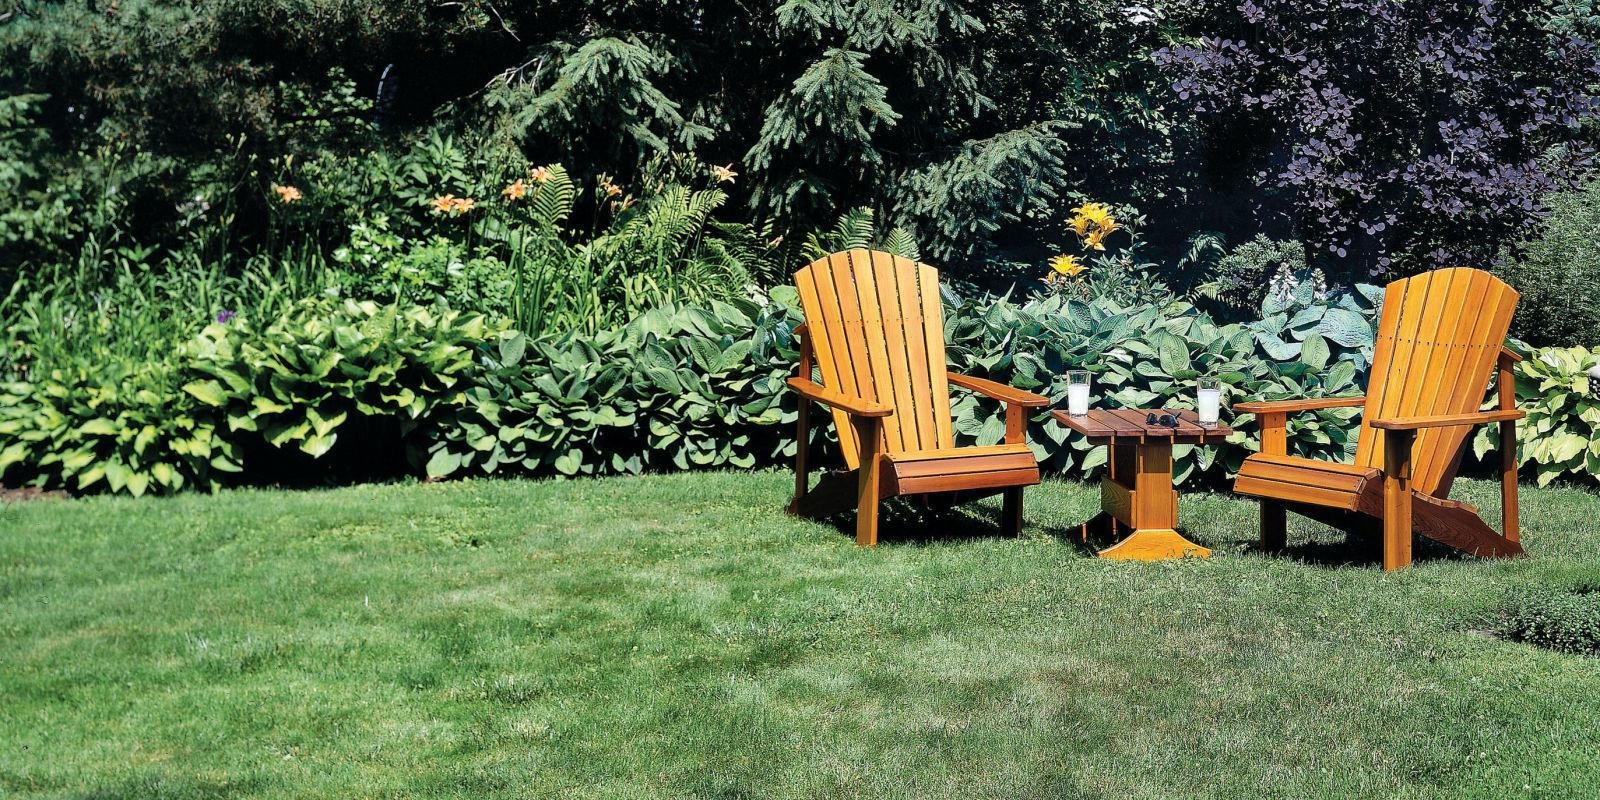 """<p>Nothing says summer like sitting in an adirondack chair on a lush green lawn, sipping away at your icy cold beverage of choice. It's even more satisfying if you built the furniture yourself. So dump your cheap chaise lounges and make your own set of these iconic chairs.</p><p><a href=""""http://www.popularmechanics.com/home/how-to-plans/how-to/a709/easy-adirondack-chair-plans/"""" rel=""""nofollow noopener"""" target=""""_blank"""" data-ylk=""""slk:How to Build an Adirondack Chair Set and Table"""" class=""""link rapid-noclick-resp"""">How to Build an Adirondack Chair Set and Table</a></p>"""